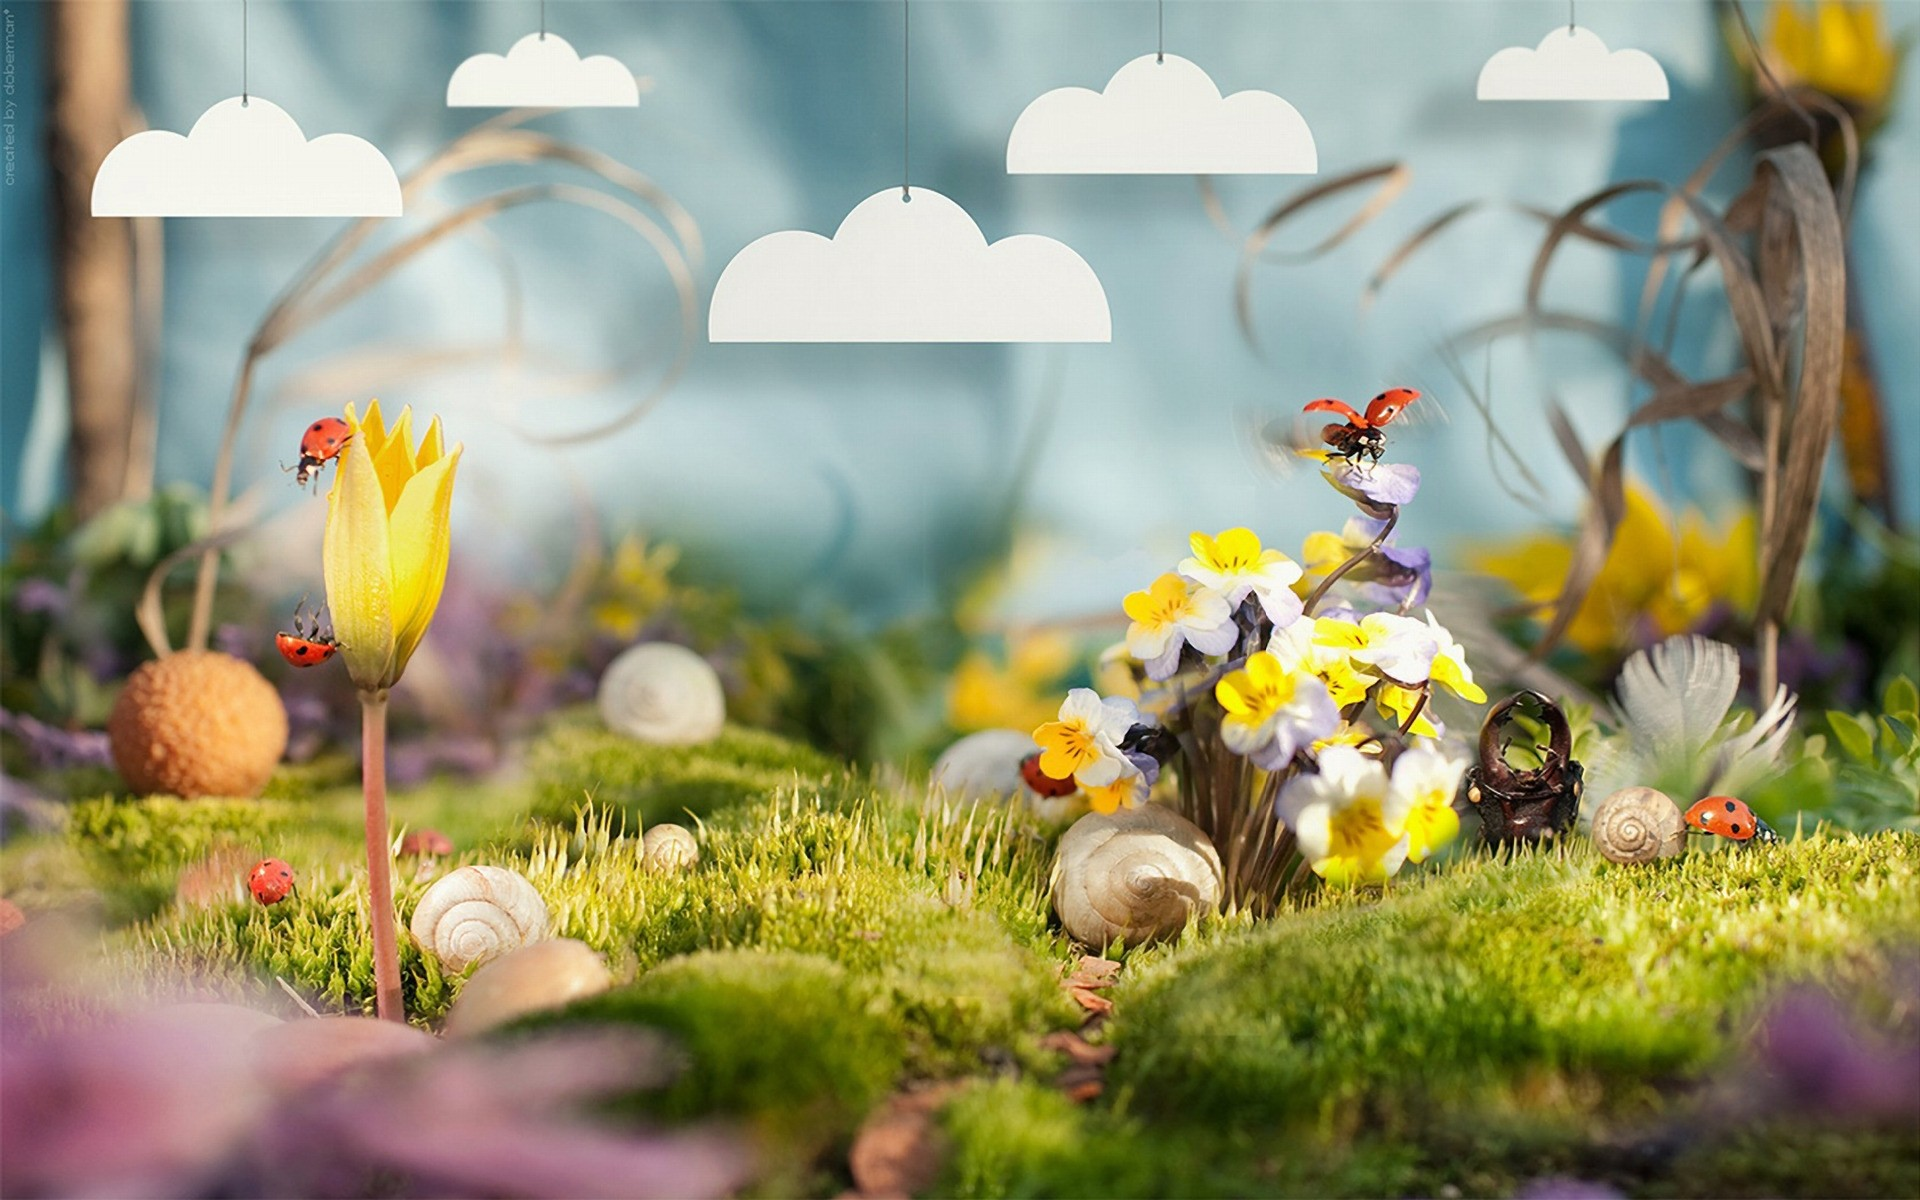 photo manipulation nature flower grass leaf flora garden season color outdoors summer easter field floral bright growth beautiful fair weather fall blooming spring bee ladybug flowers